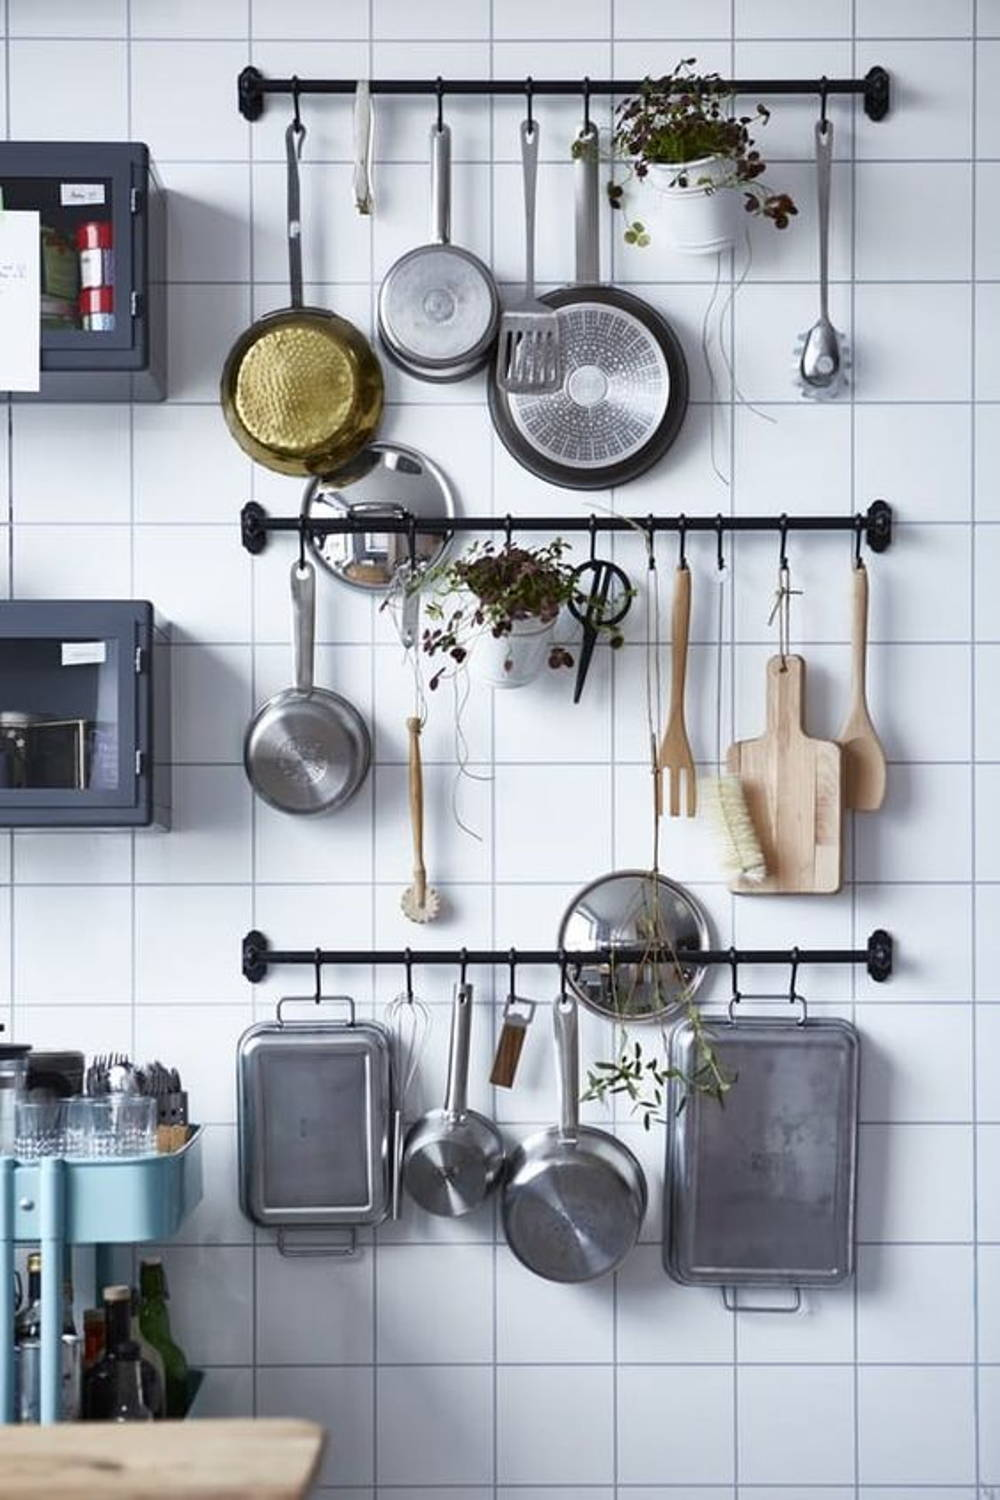 Hanging kitchen items